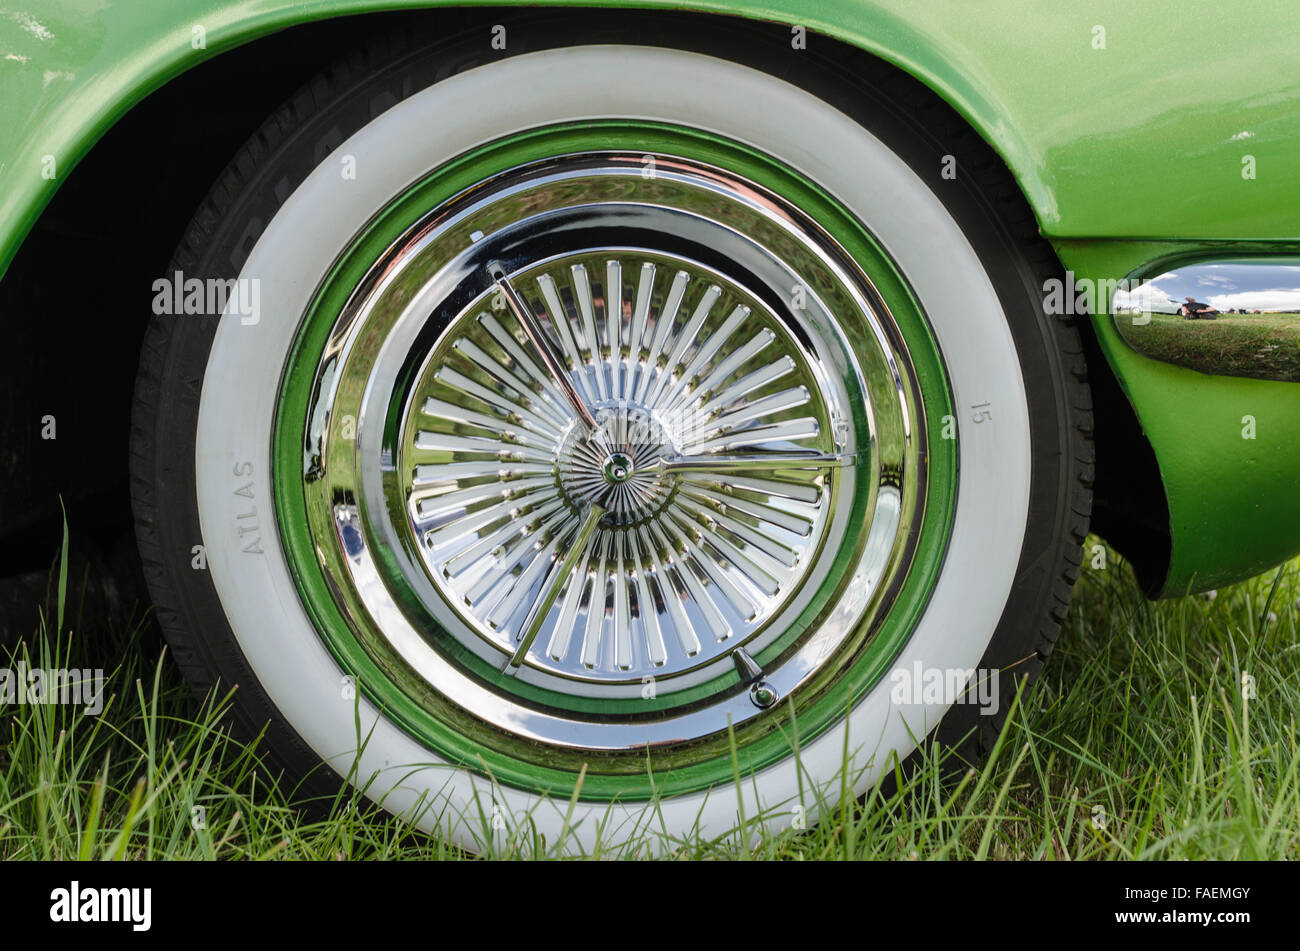 Whitewall tyre on a custom classic car finished in metallic greem with lots of shiny chrome - Stock Image